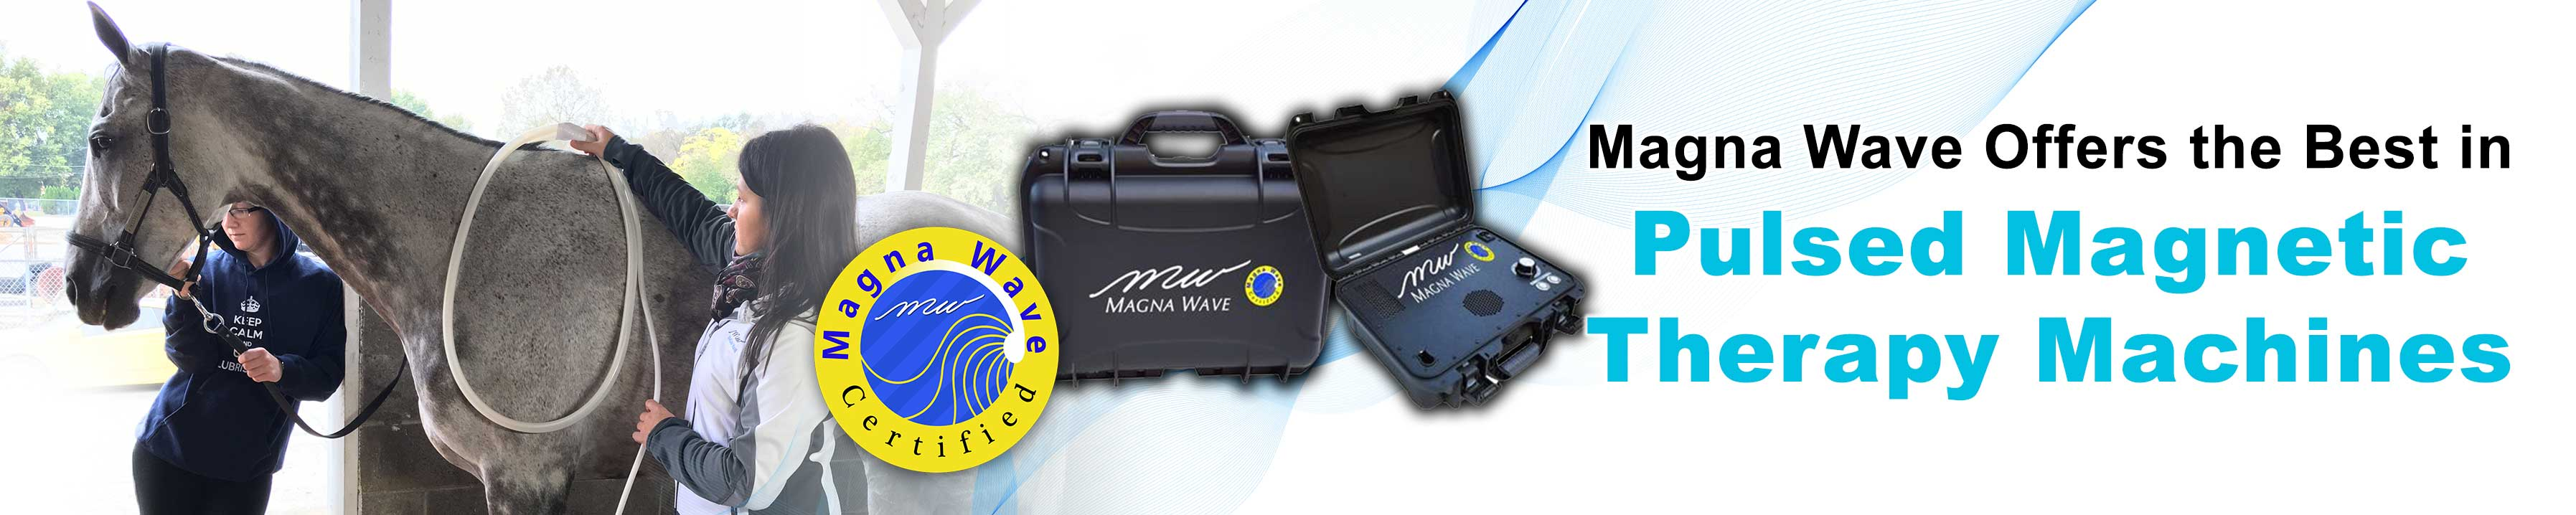 Magna Wave offers the Best in Pulsed Magnetic Therapy Machines